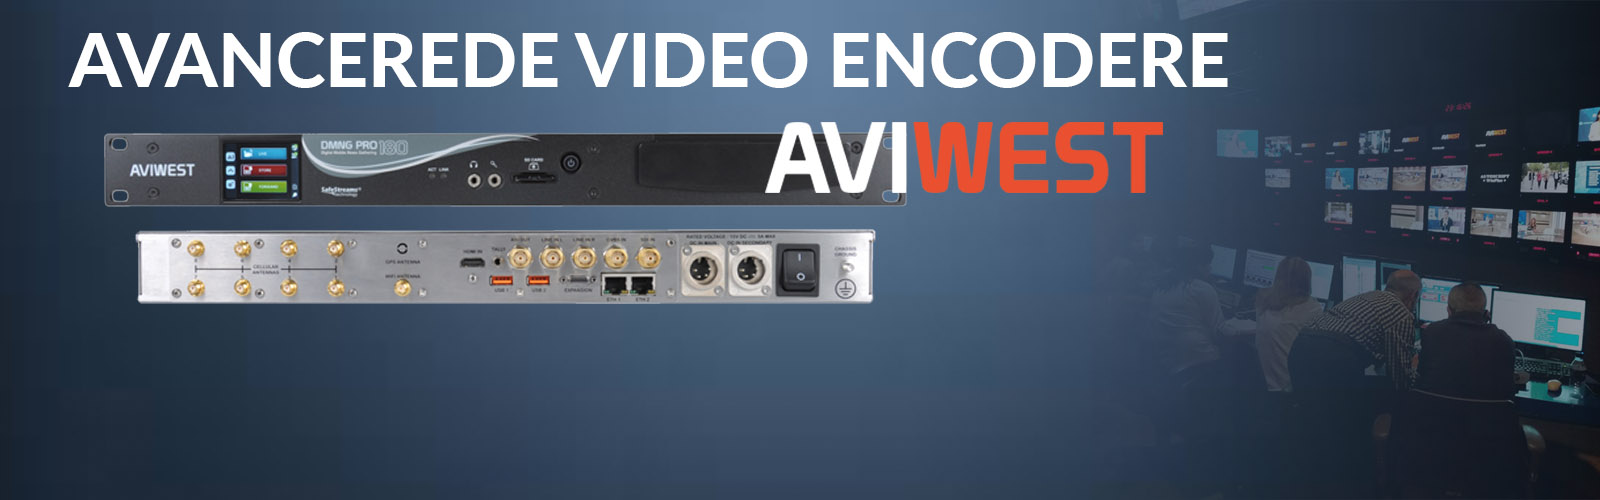 AVIWEST_encodere_slider